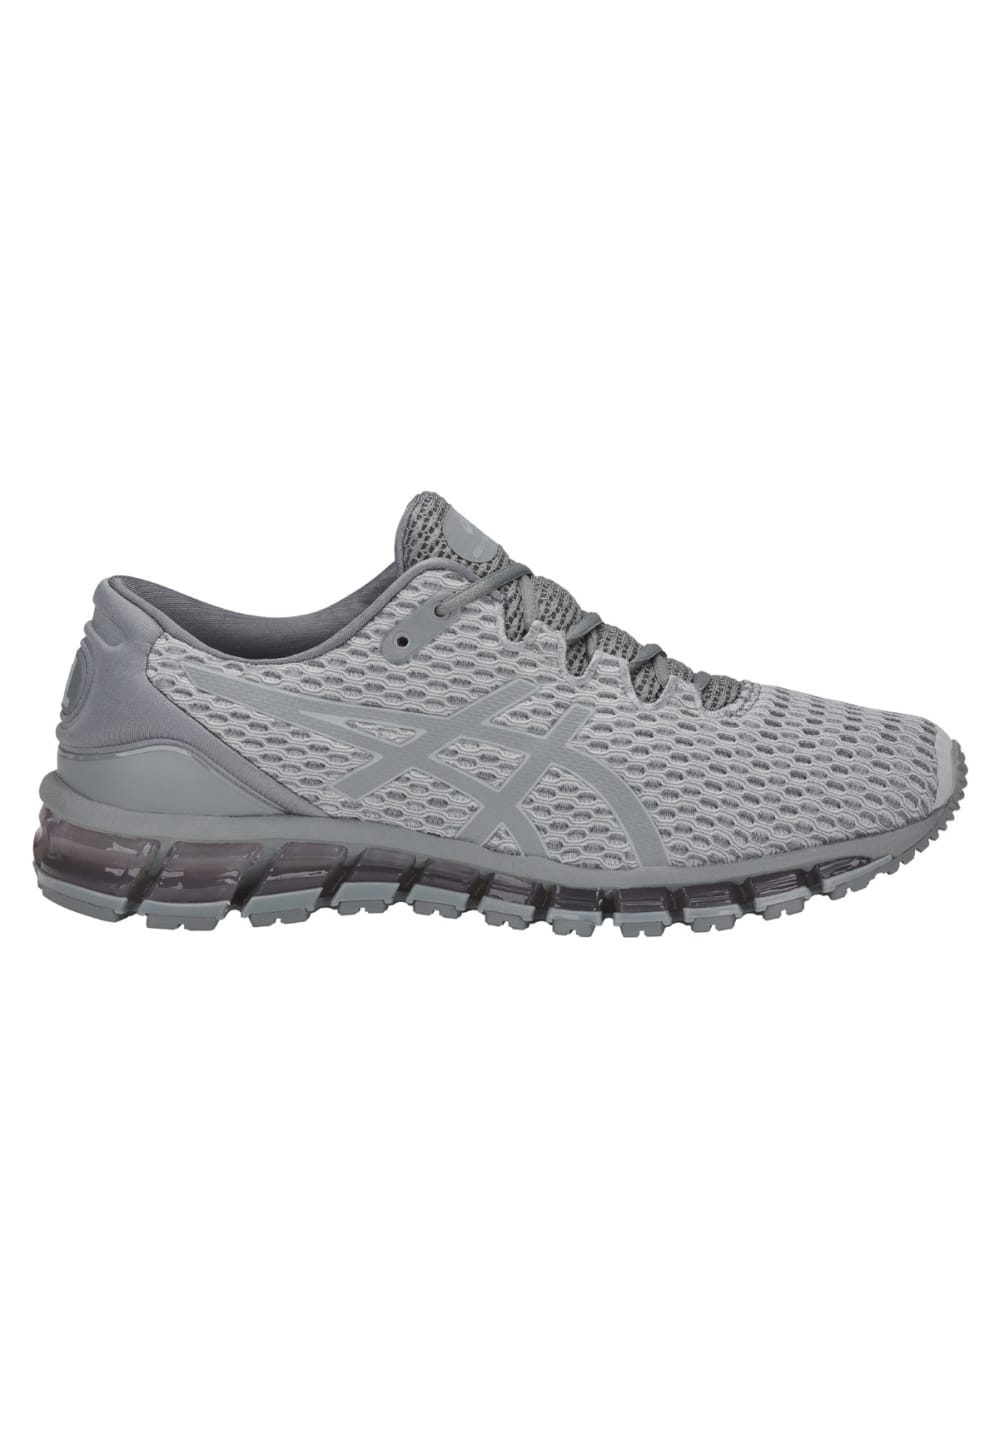 ASICS GEL-Quantum 360 Shift MX - Running shoes for Men - Grey